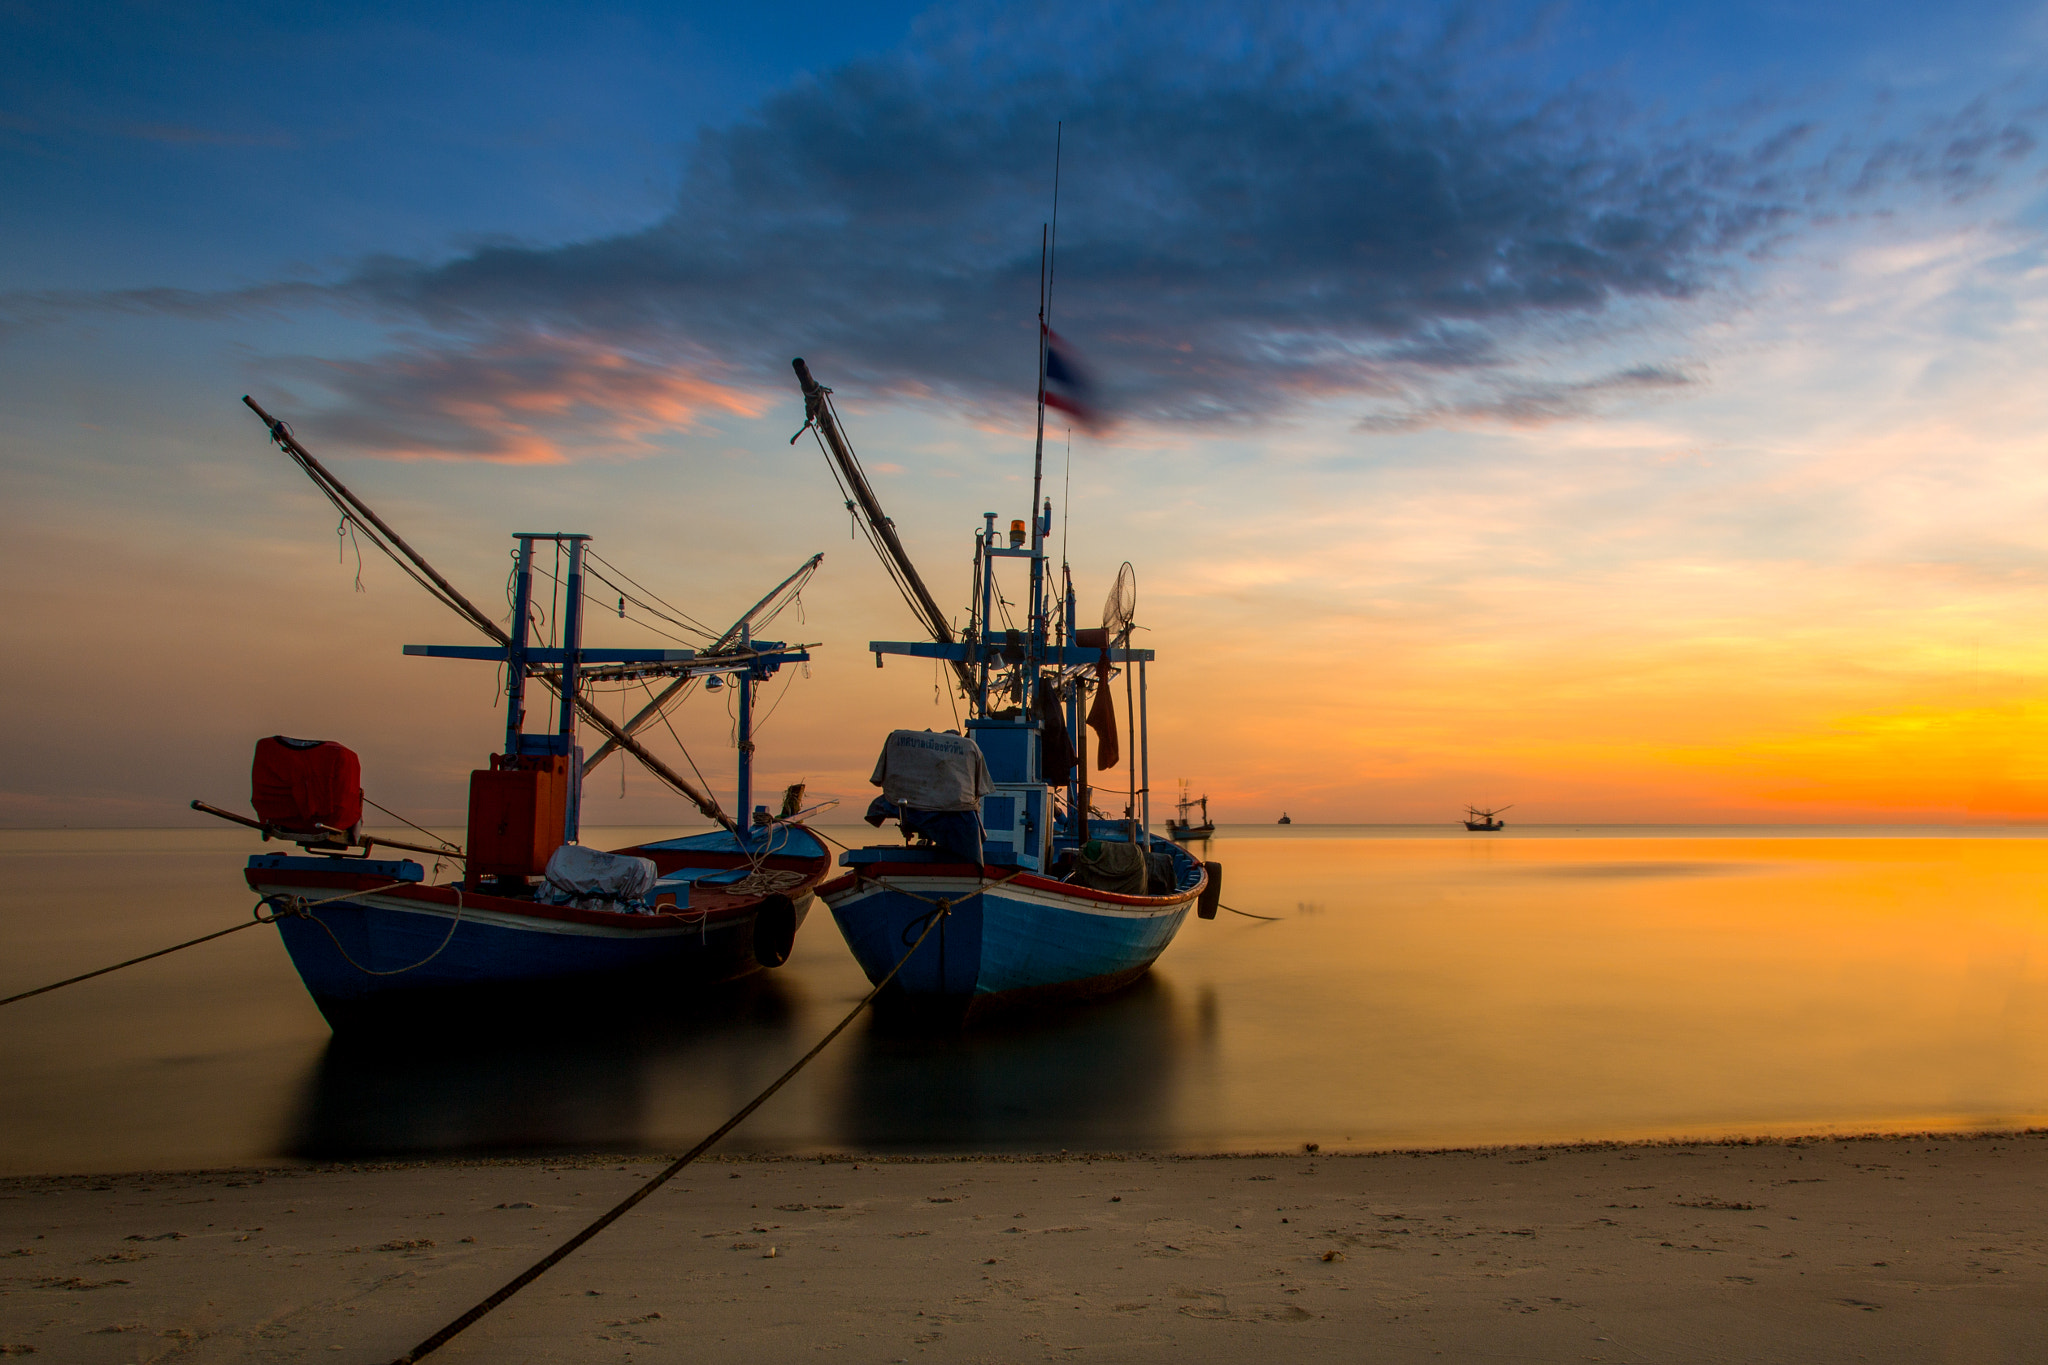 Photograph Two Boat in sunset by Arthit Somsakul on 500px